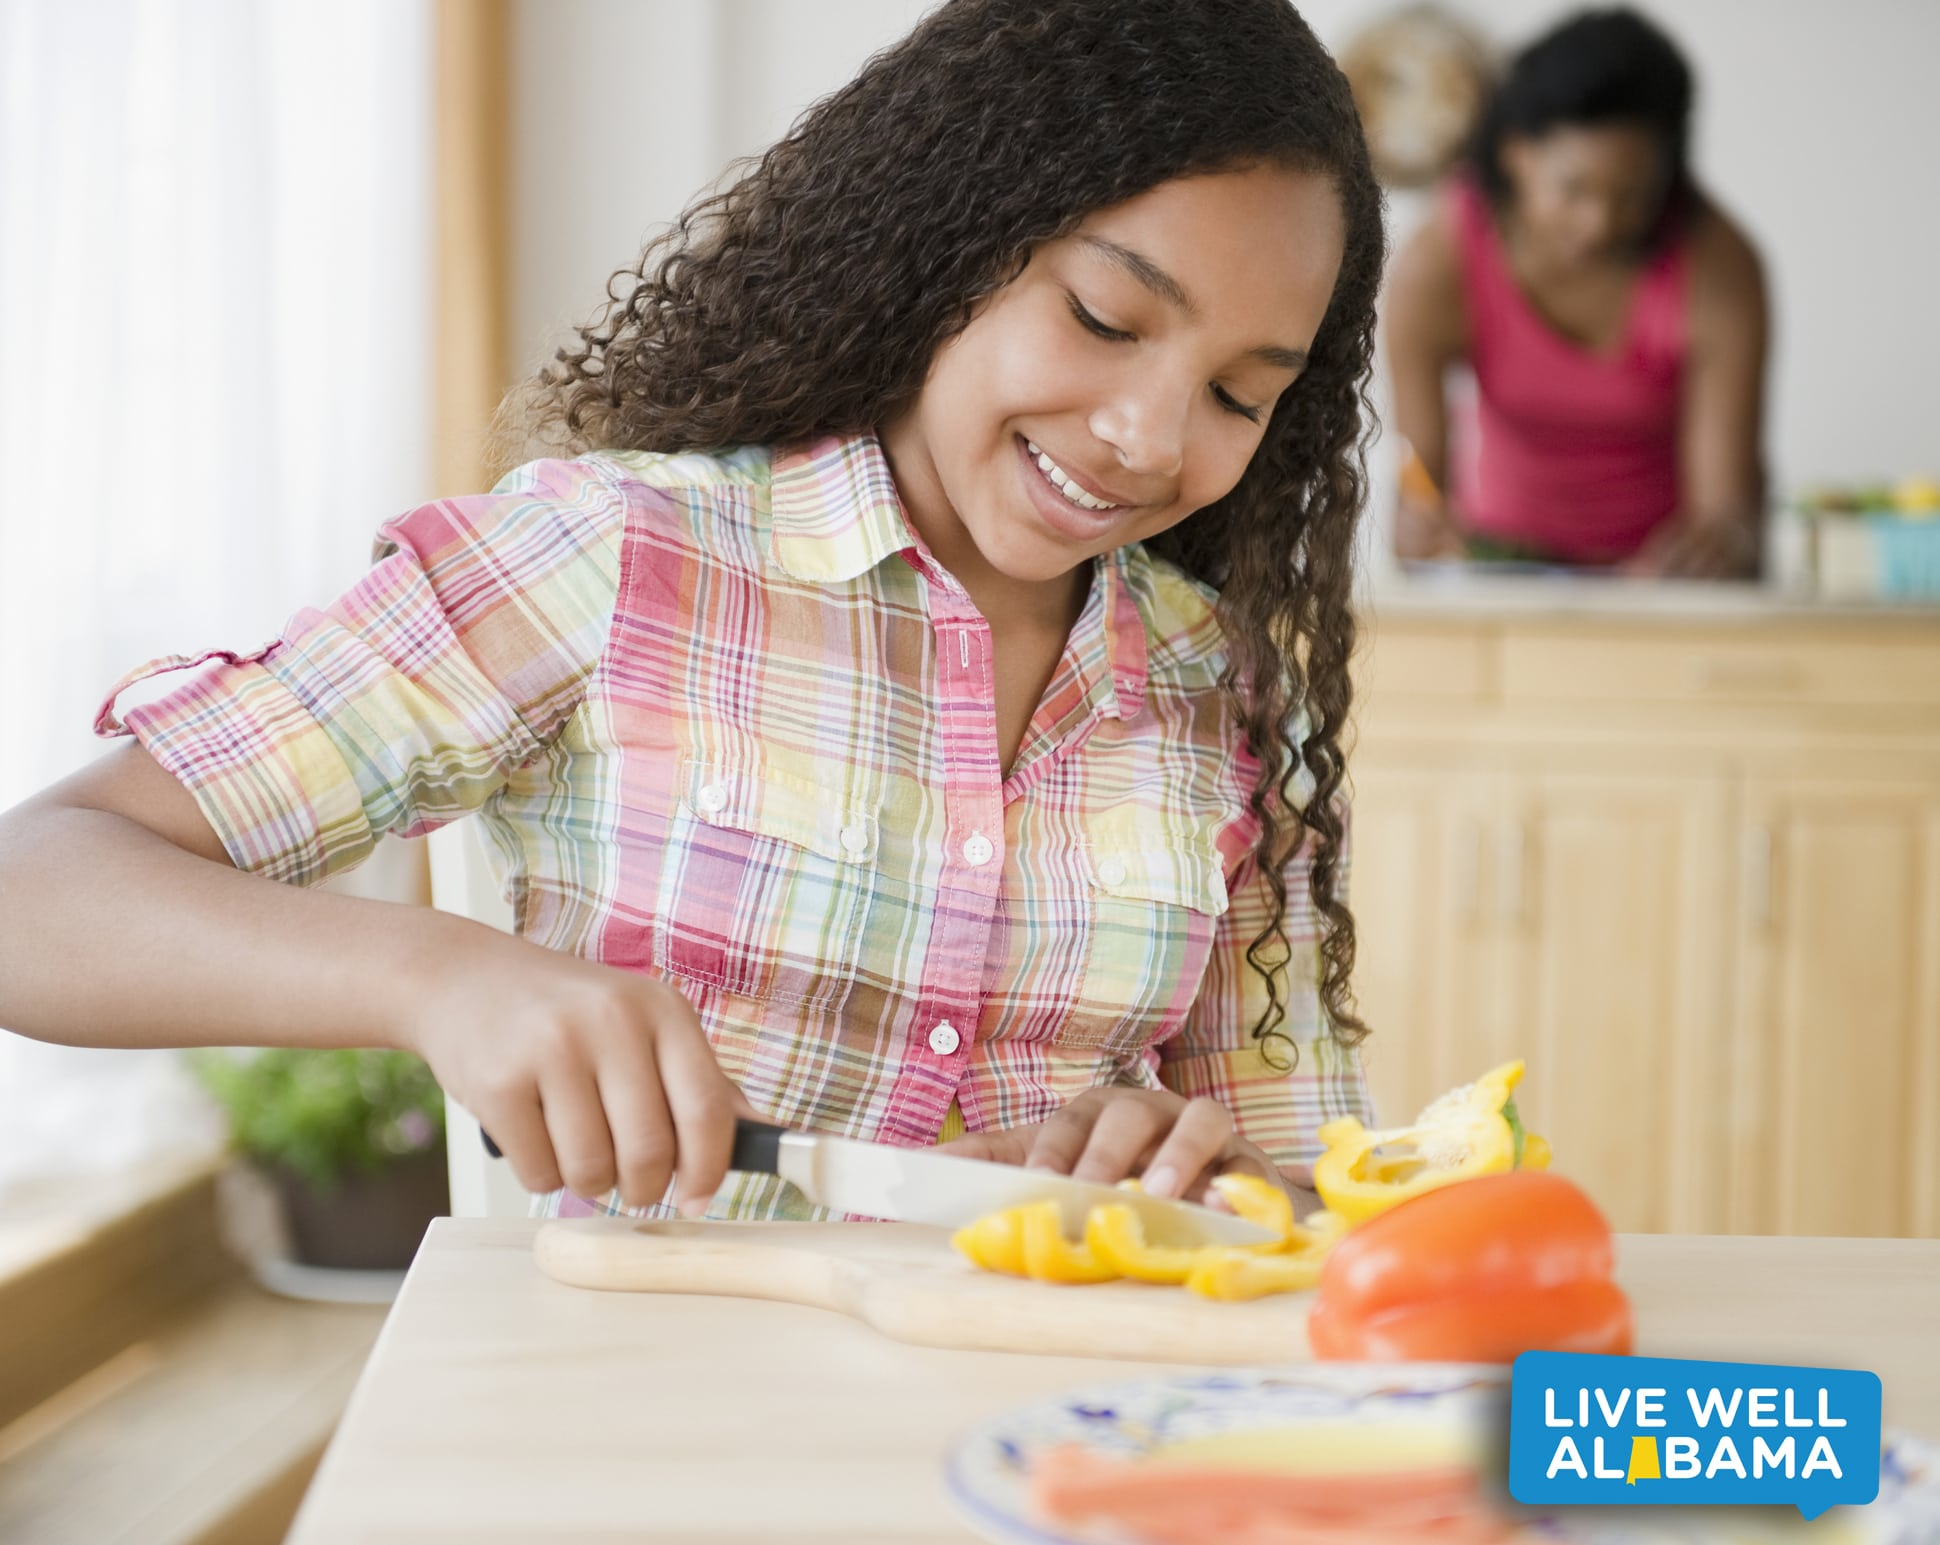 girl cutting bell peppers; featured social media image